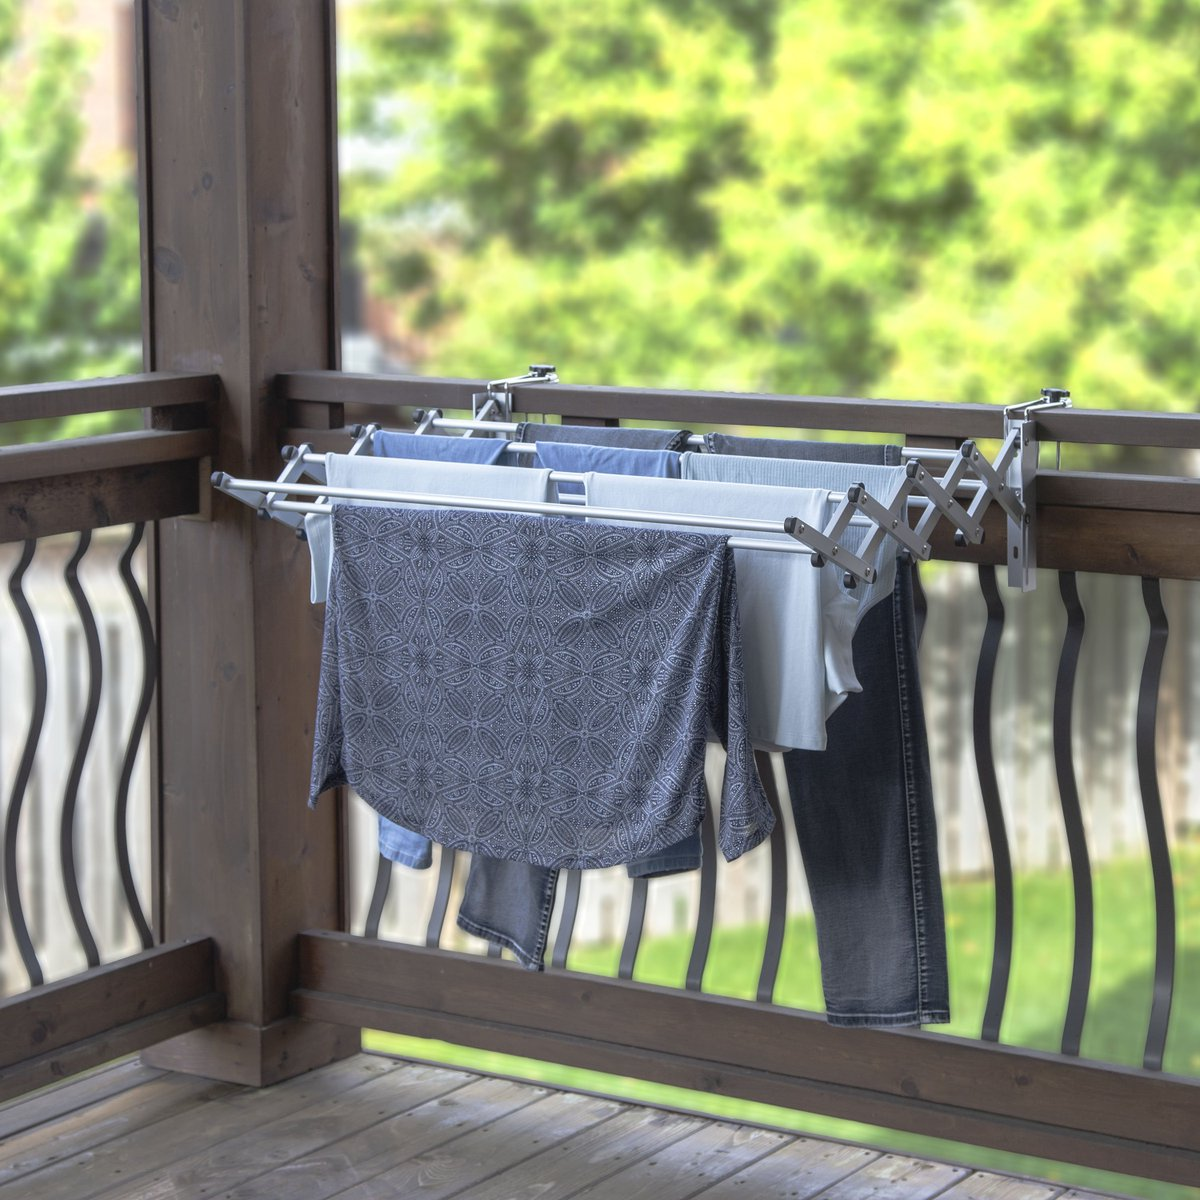 Our featured #streamlineyoursummer giveaway item can be installed on any balcony, fence, RV, pool shed or in your laundry room or basement. It conveniently folds away when not in use. Learn more here: https://t.co/Eb18OthIYd https://t.co/zRXadSGQDn